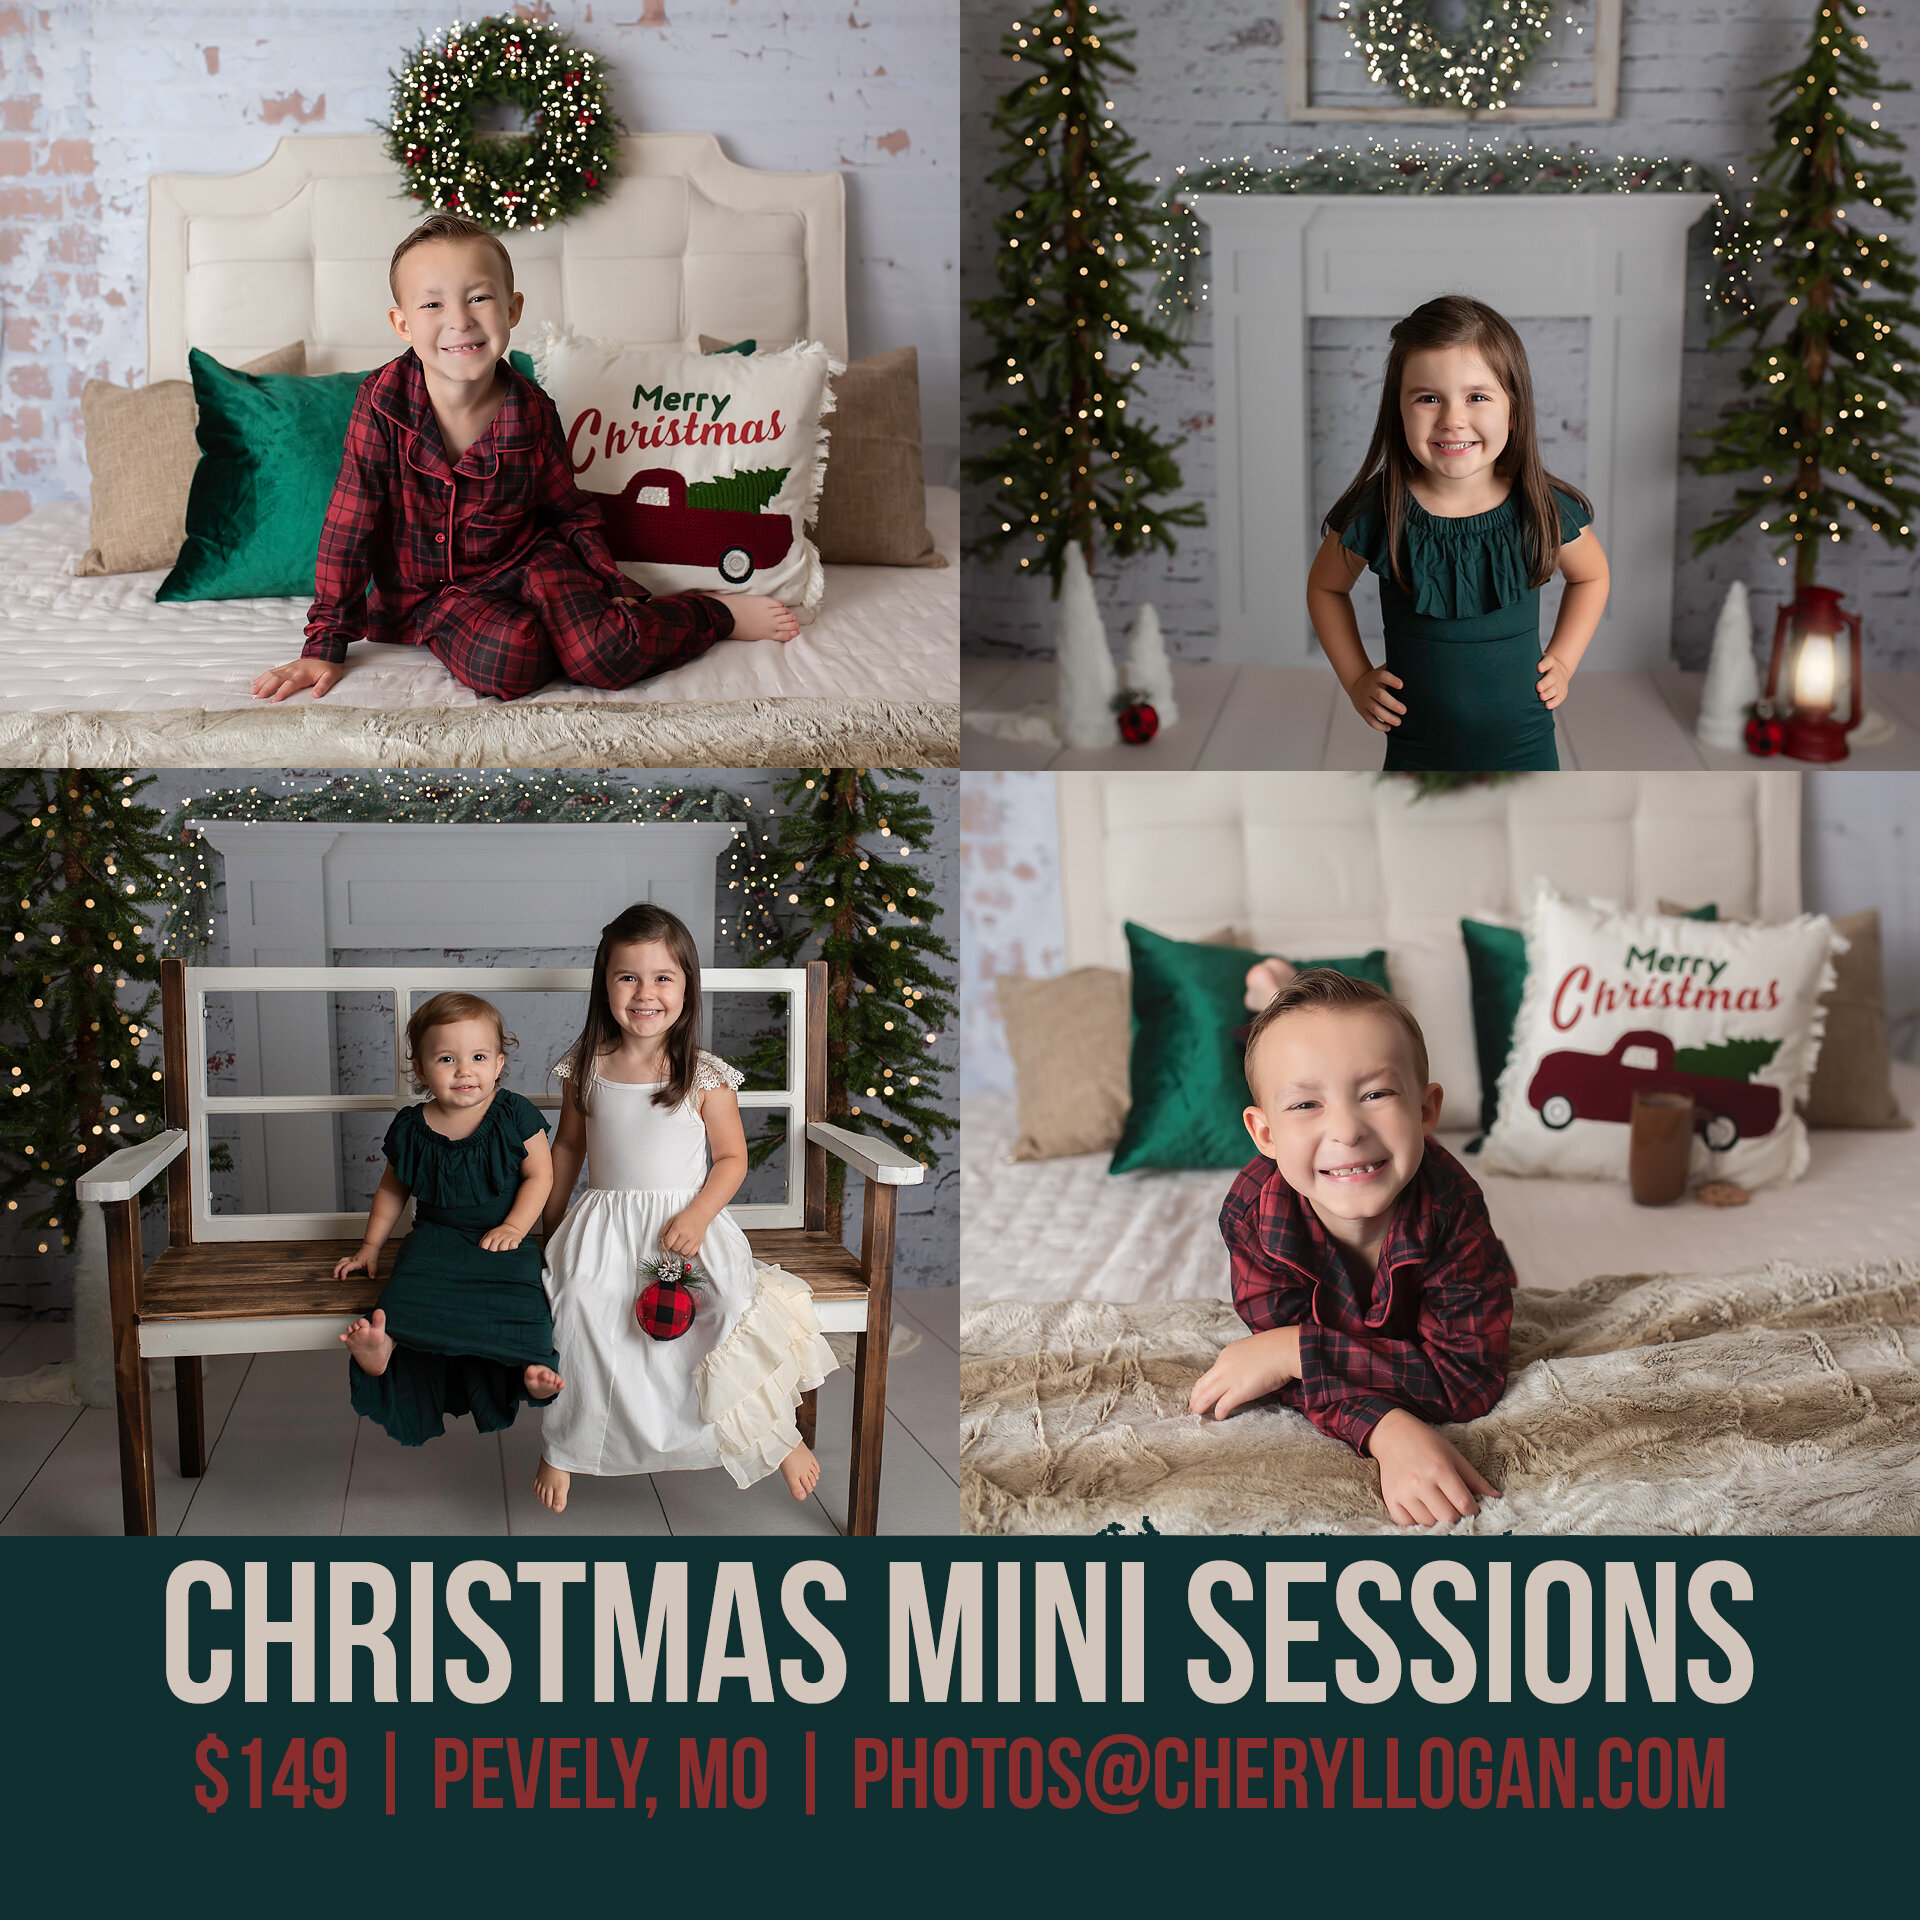 Christmas Mini Session - Christmas Mini Sessions are perfect for the whole family! The large 8x10 backdrops can accommodate a family of 4-5 people. These are a great option for Christmas Cards! They are available in November & December.